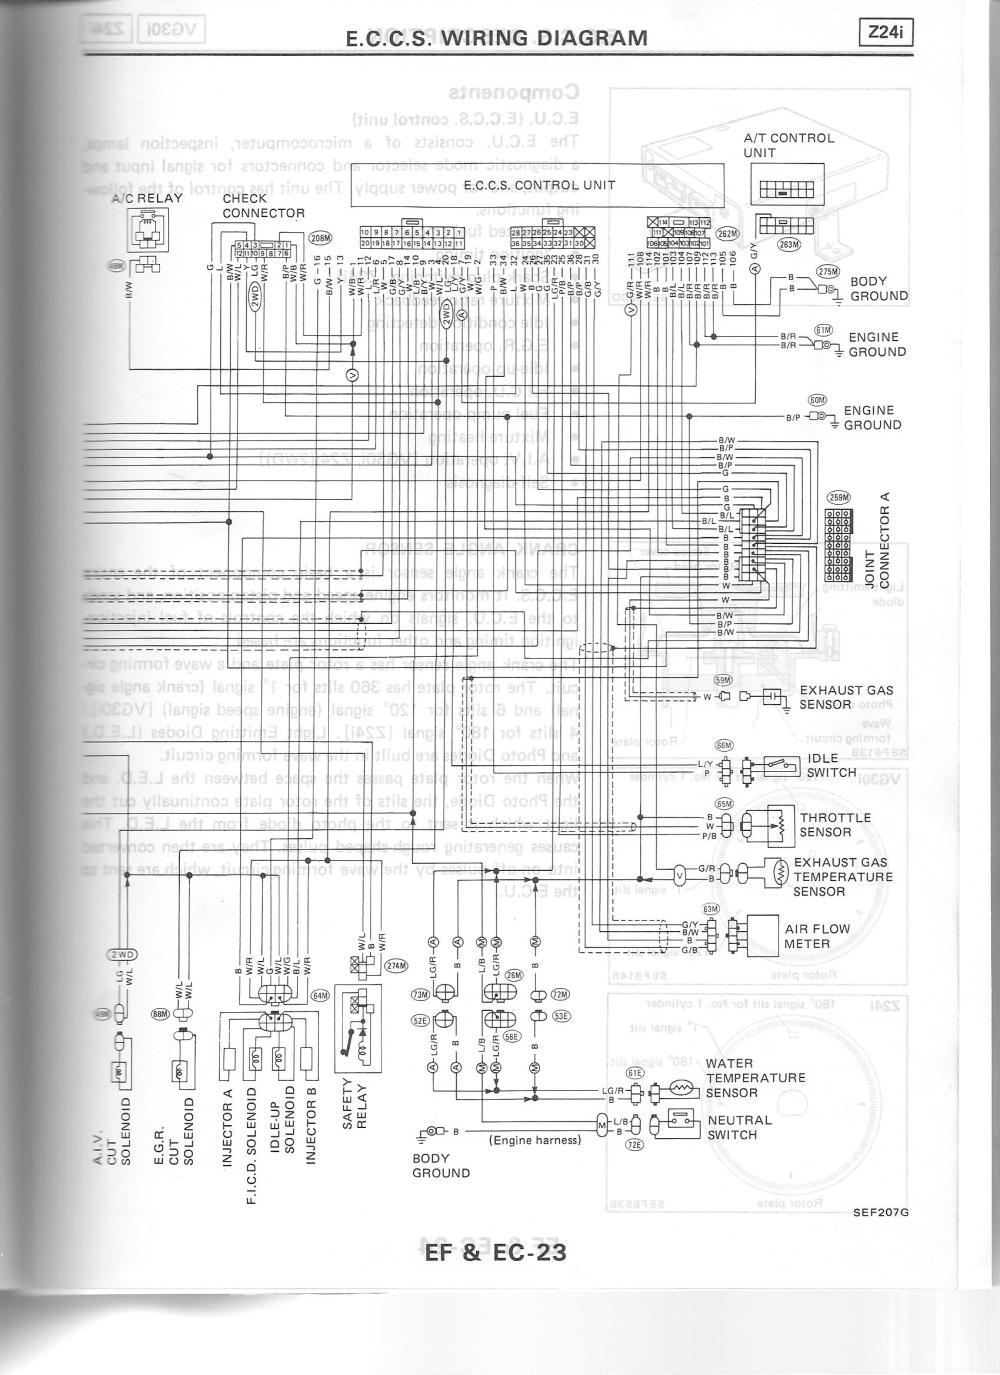 medium resolution of 1990 nissan truck wiring diagram wiring library nissan altima wiring diagram pdf 1990 nissan truck wiring diagram